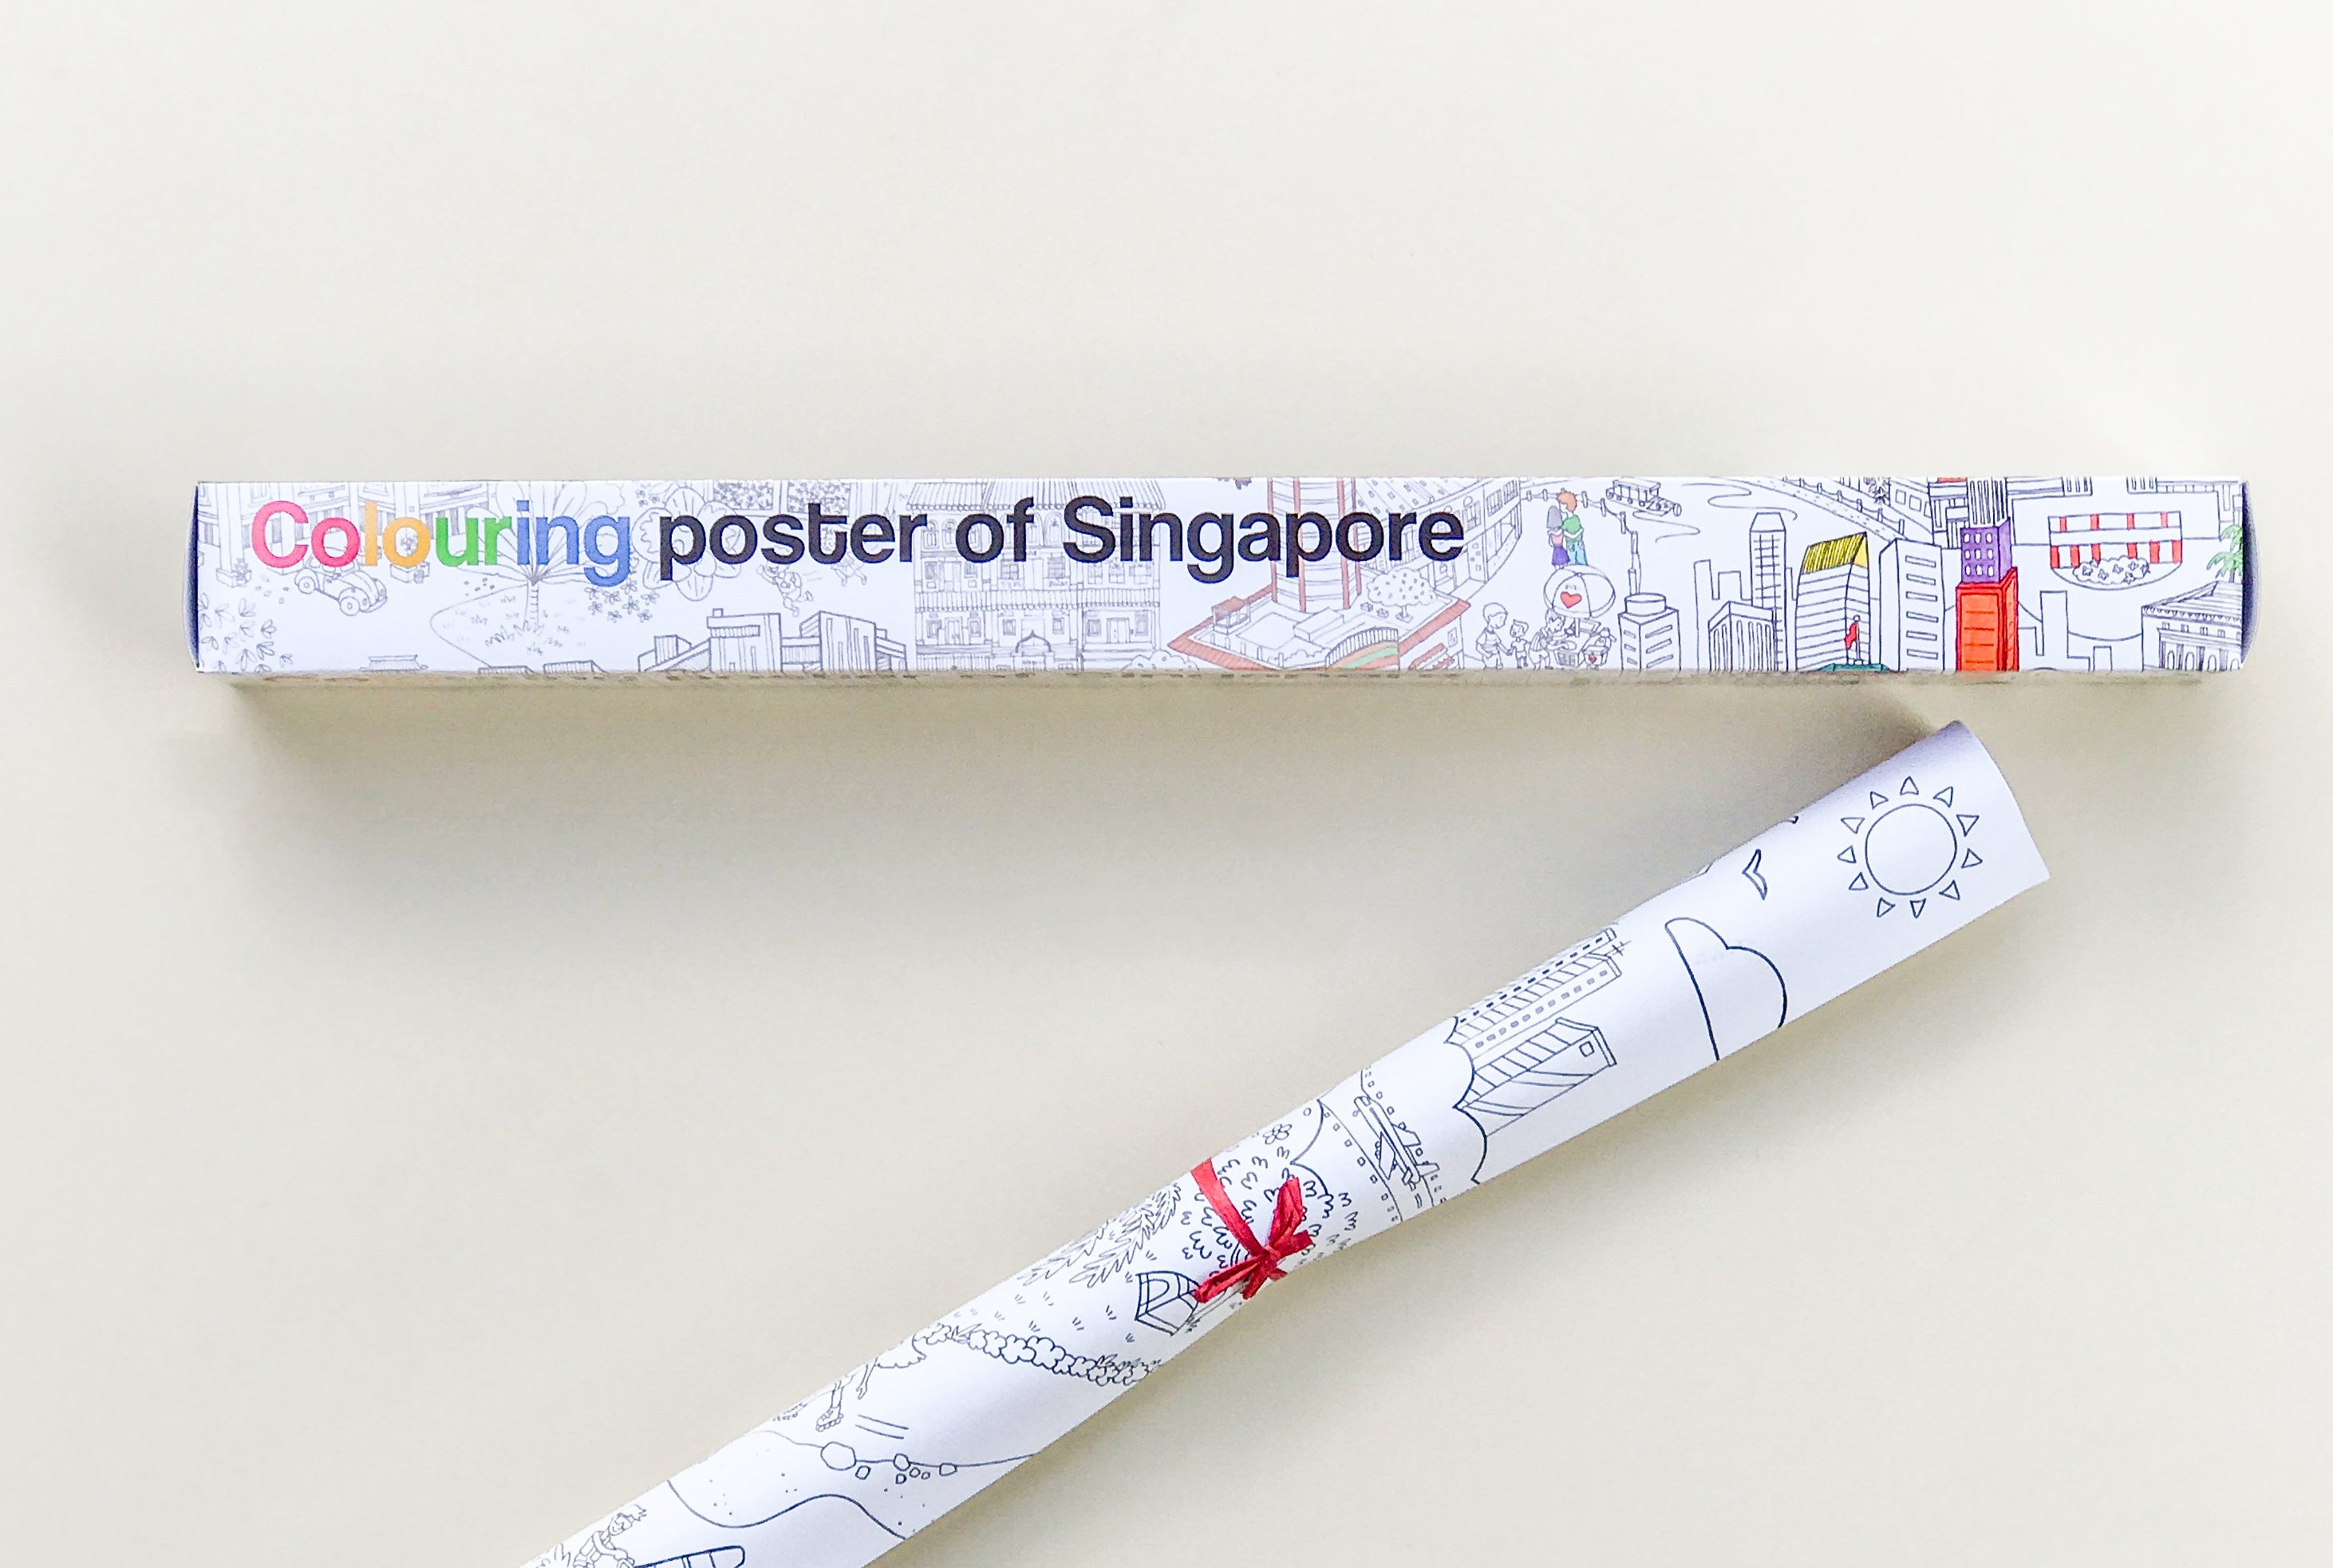 Giant colouring poster of Singapore